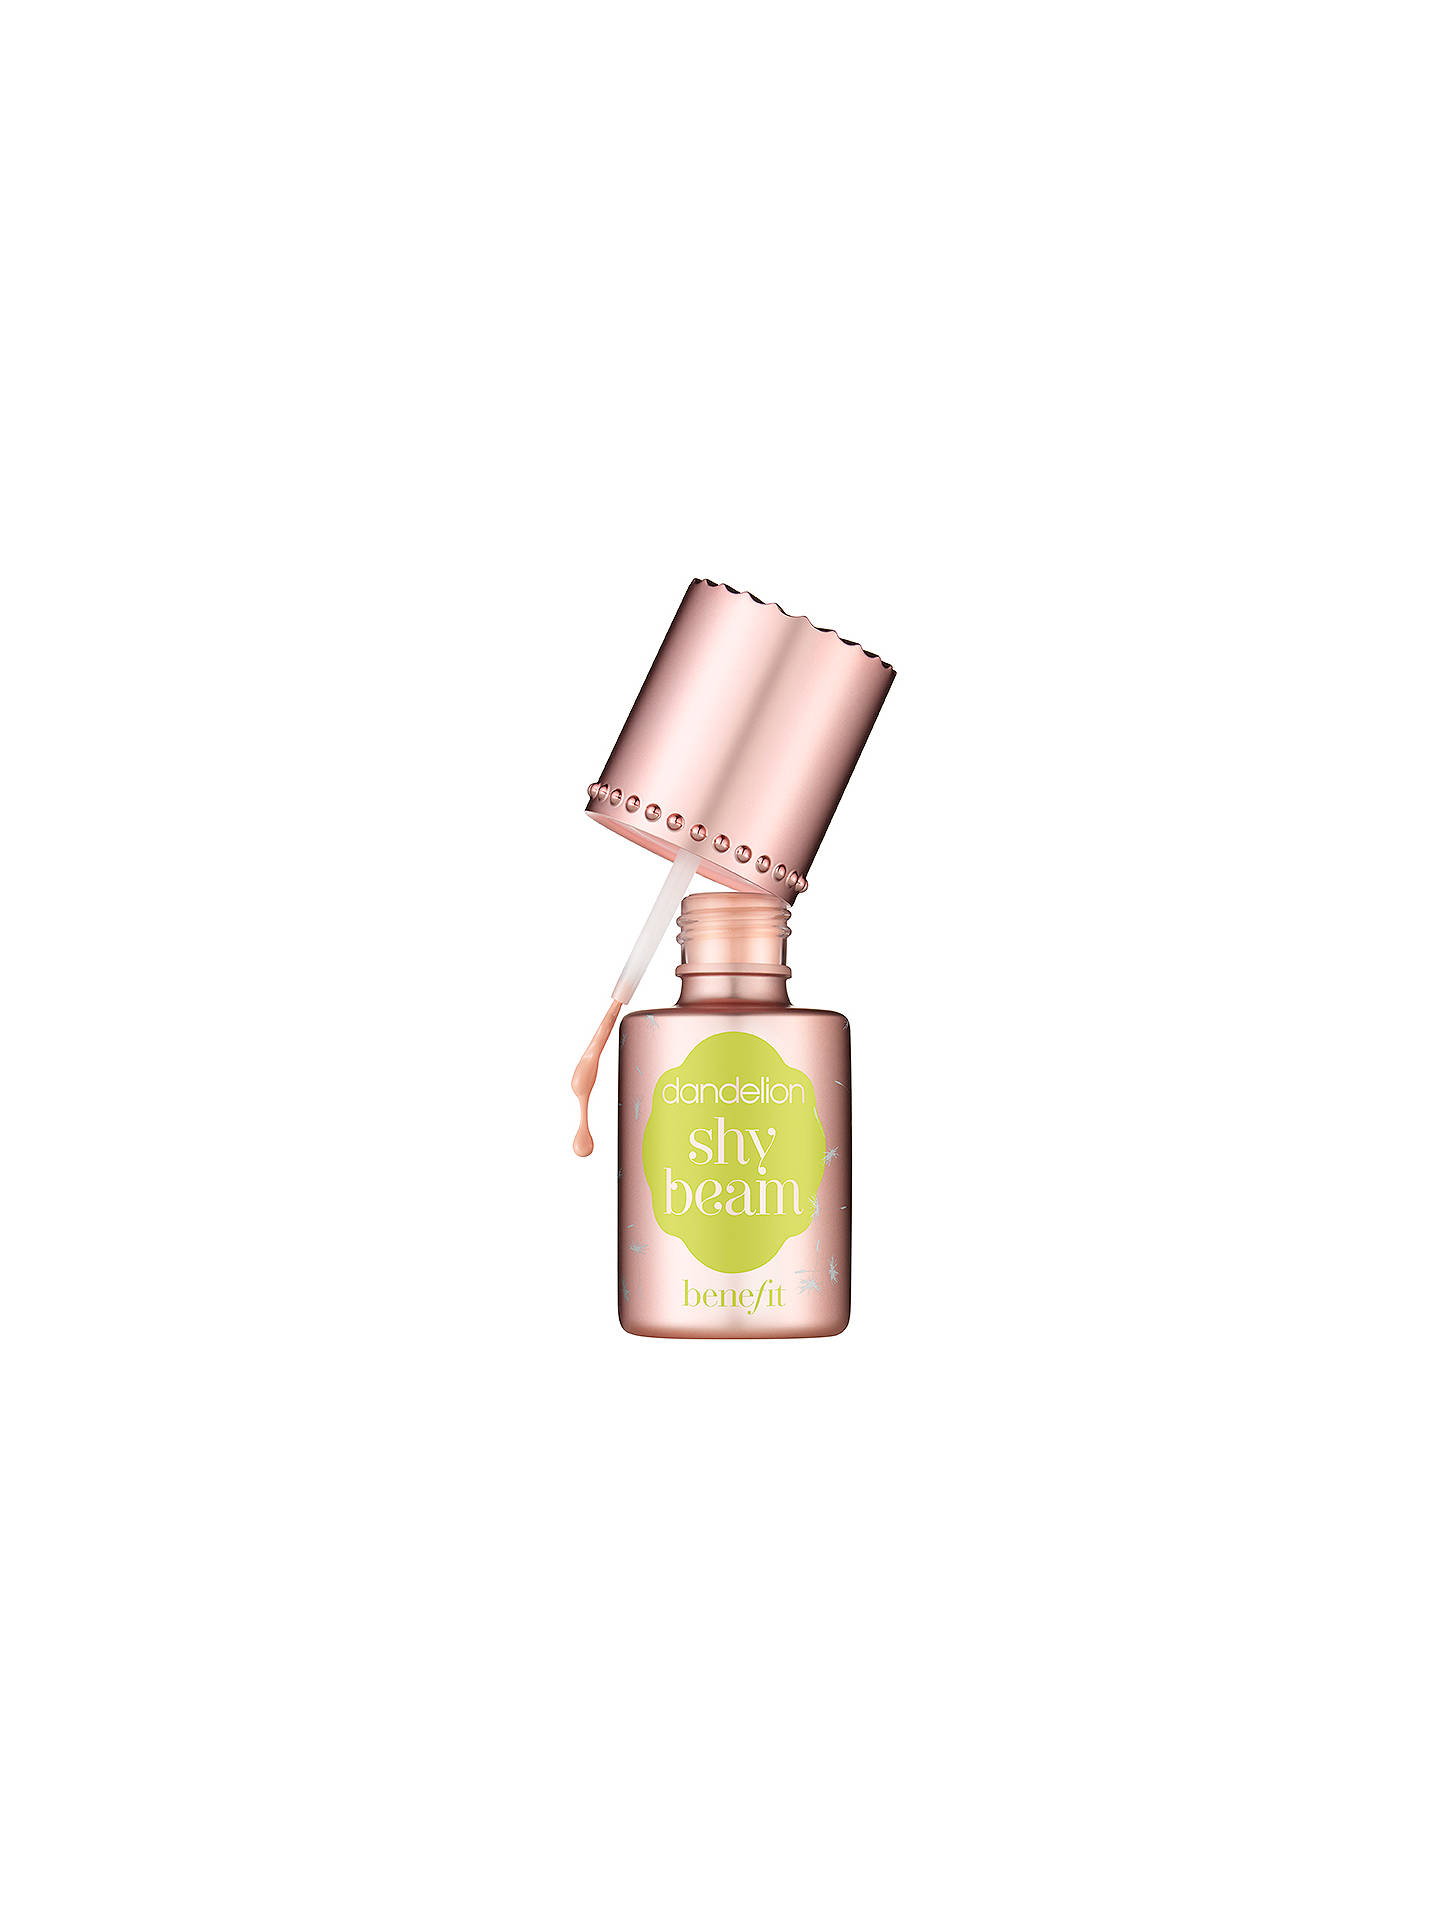 Buy Benefit Dandelion Shy Beam Liquid Highlighter, 10ml Online at johnlewis.com